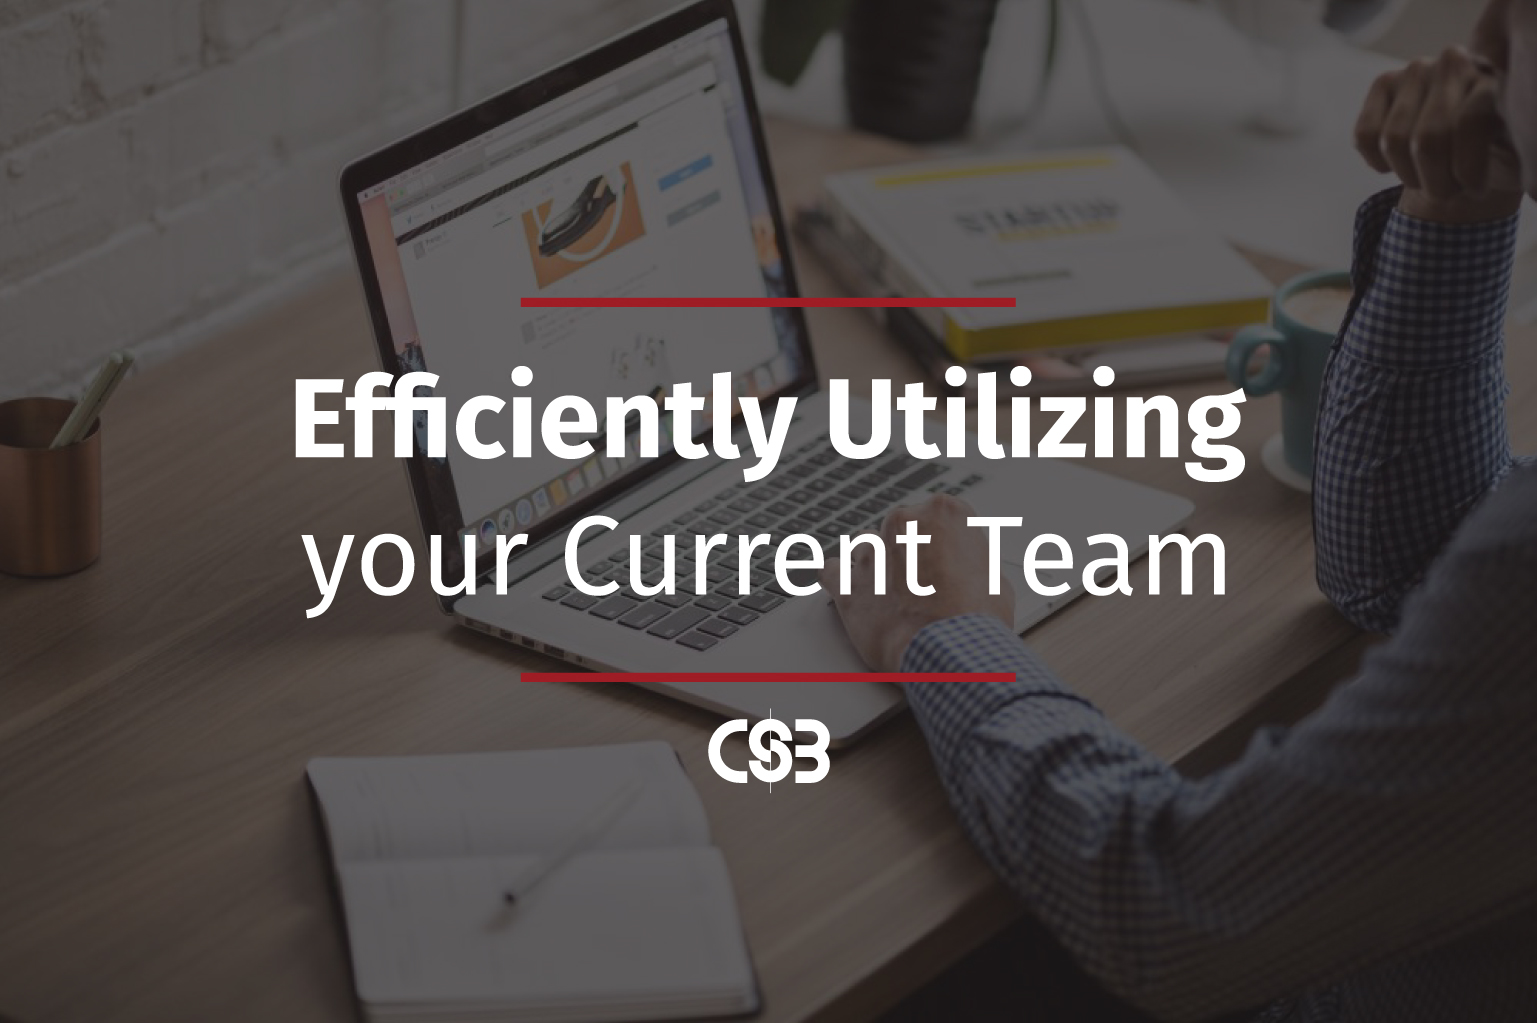 Efficiently-Utilizing-Team